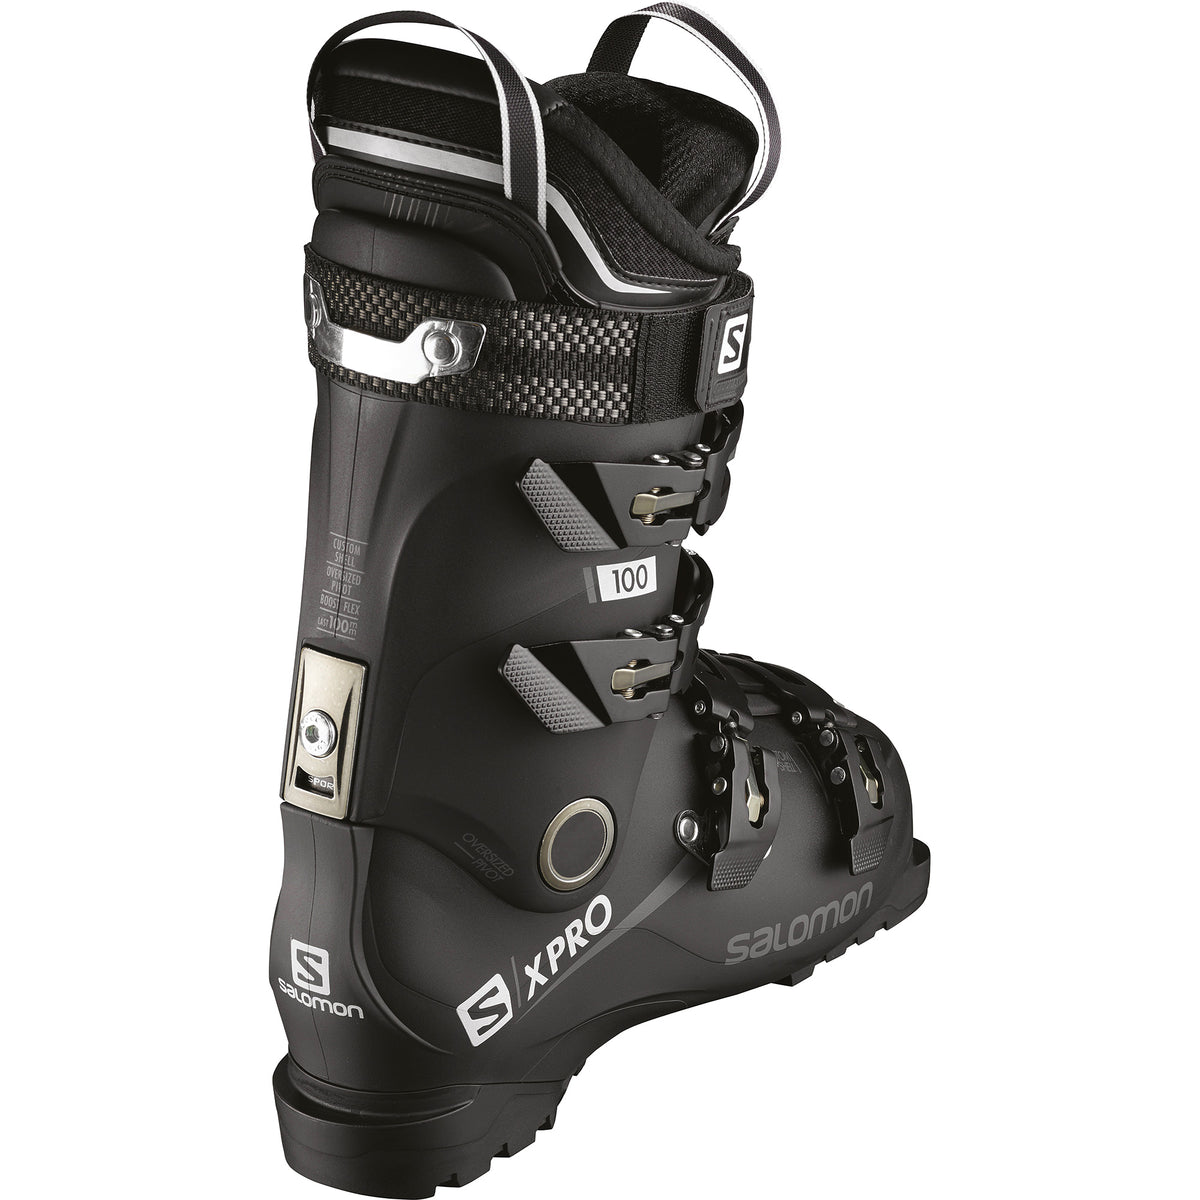 2018 Salomon X Pro 130 Mens Boot Overview by SkisDotCom